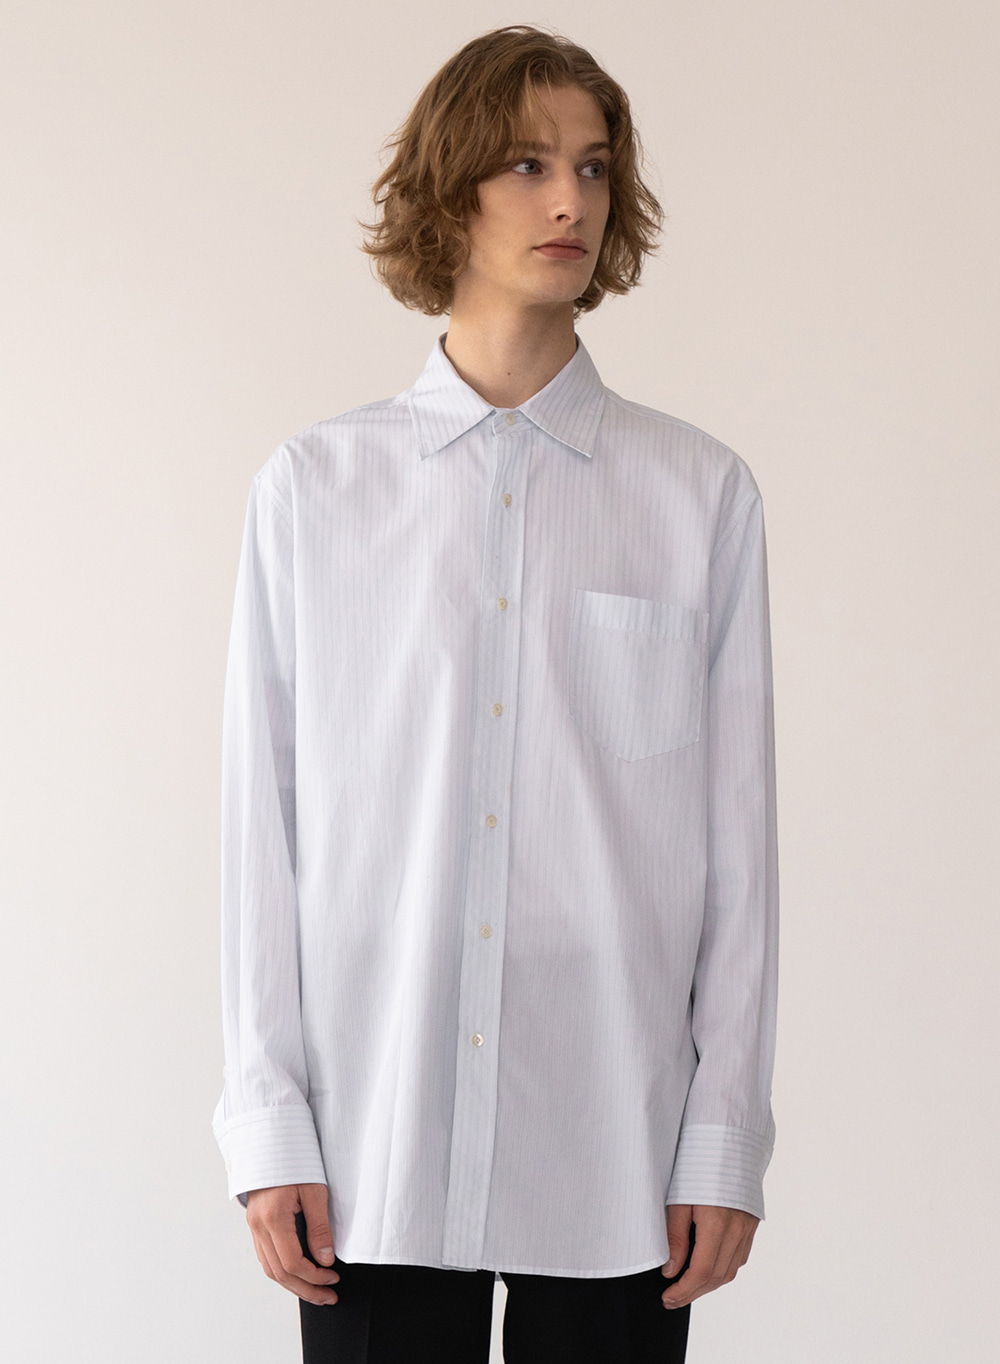 [FW20 ESSENTIAL] Premium Overshirt from Italy (CANCLINI) Stripe